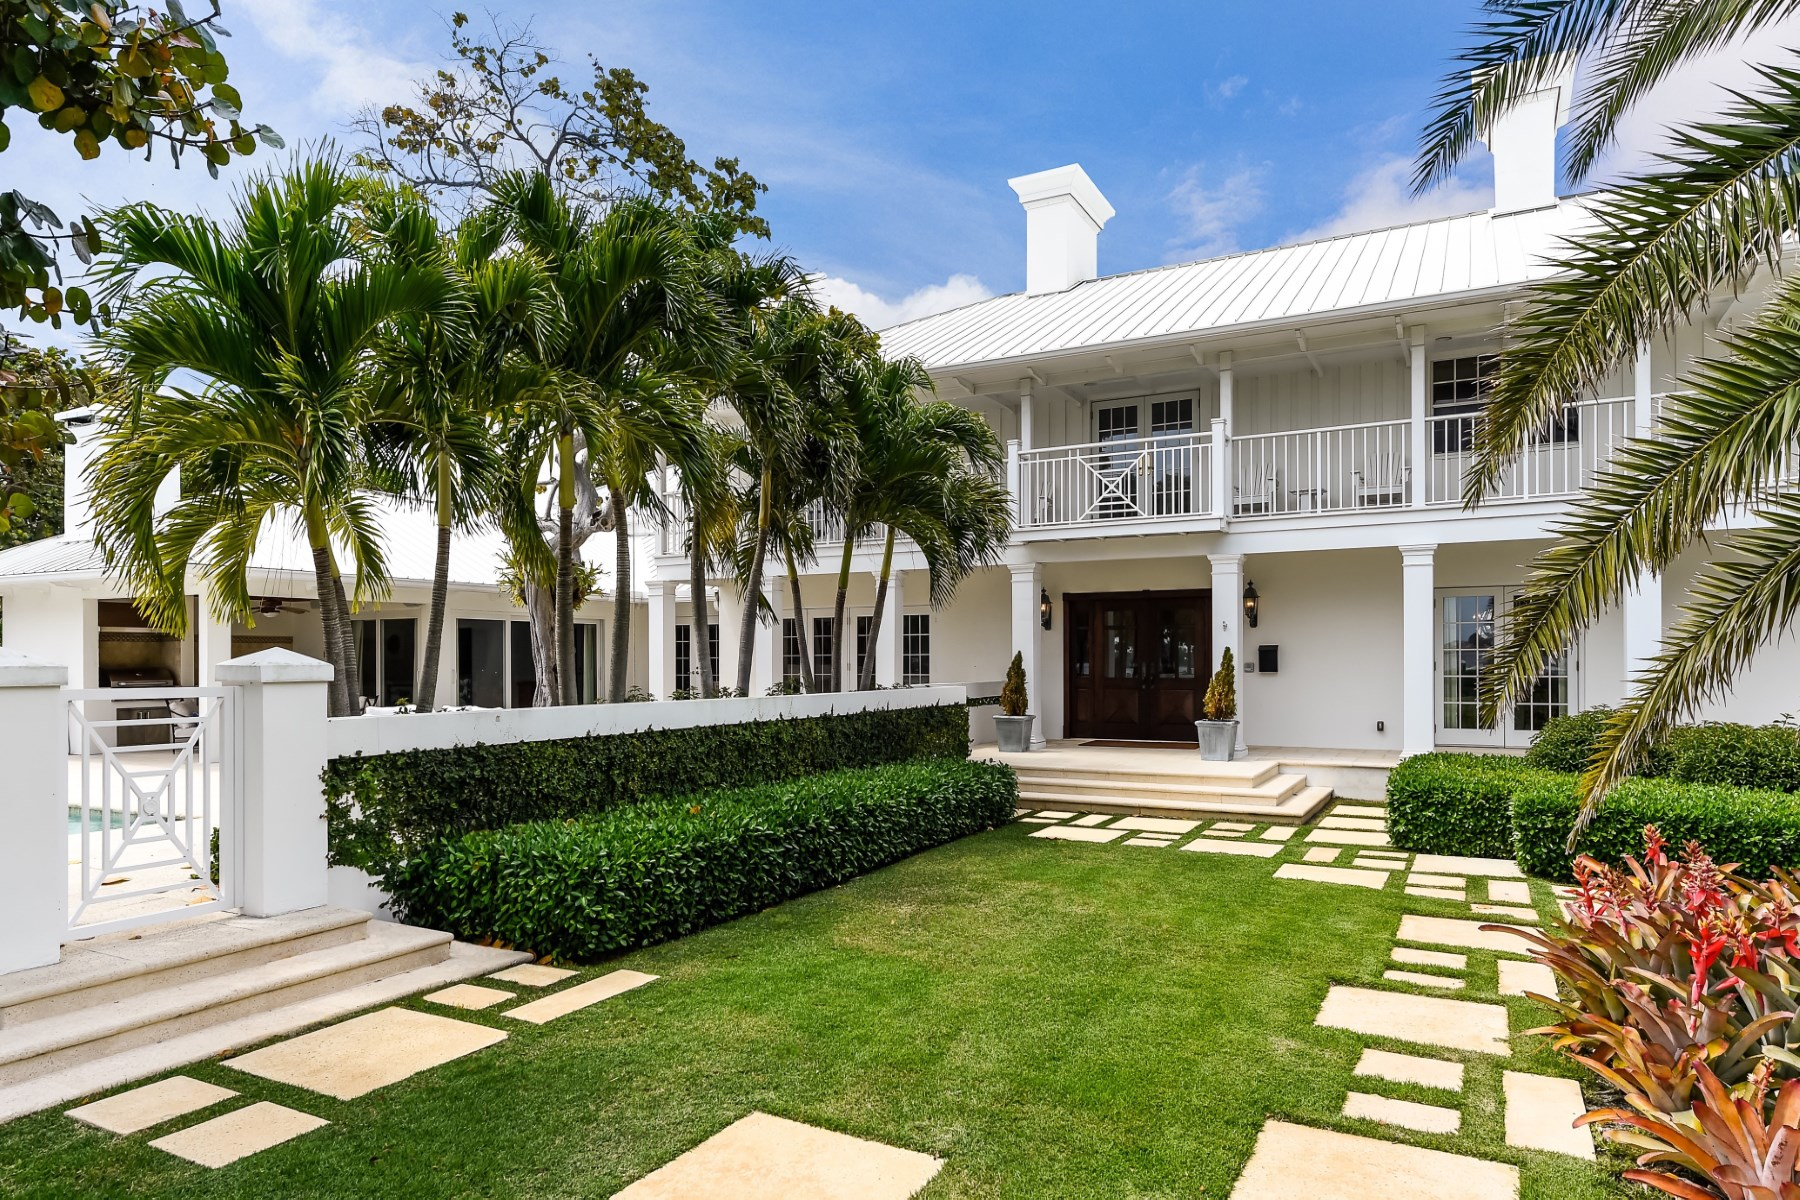 Maison unifamiliale pour l Vente à Stately Traditional Manor House 7301 S Flagler Dr West Palm Beach, Florida, 33405 États-Unis